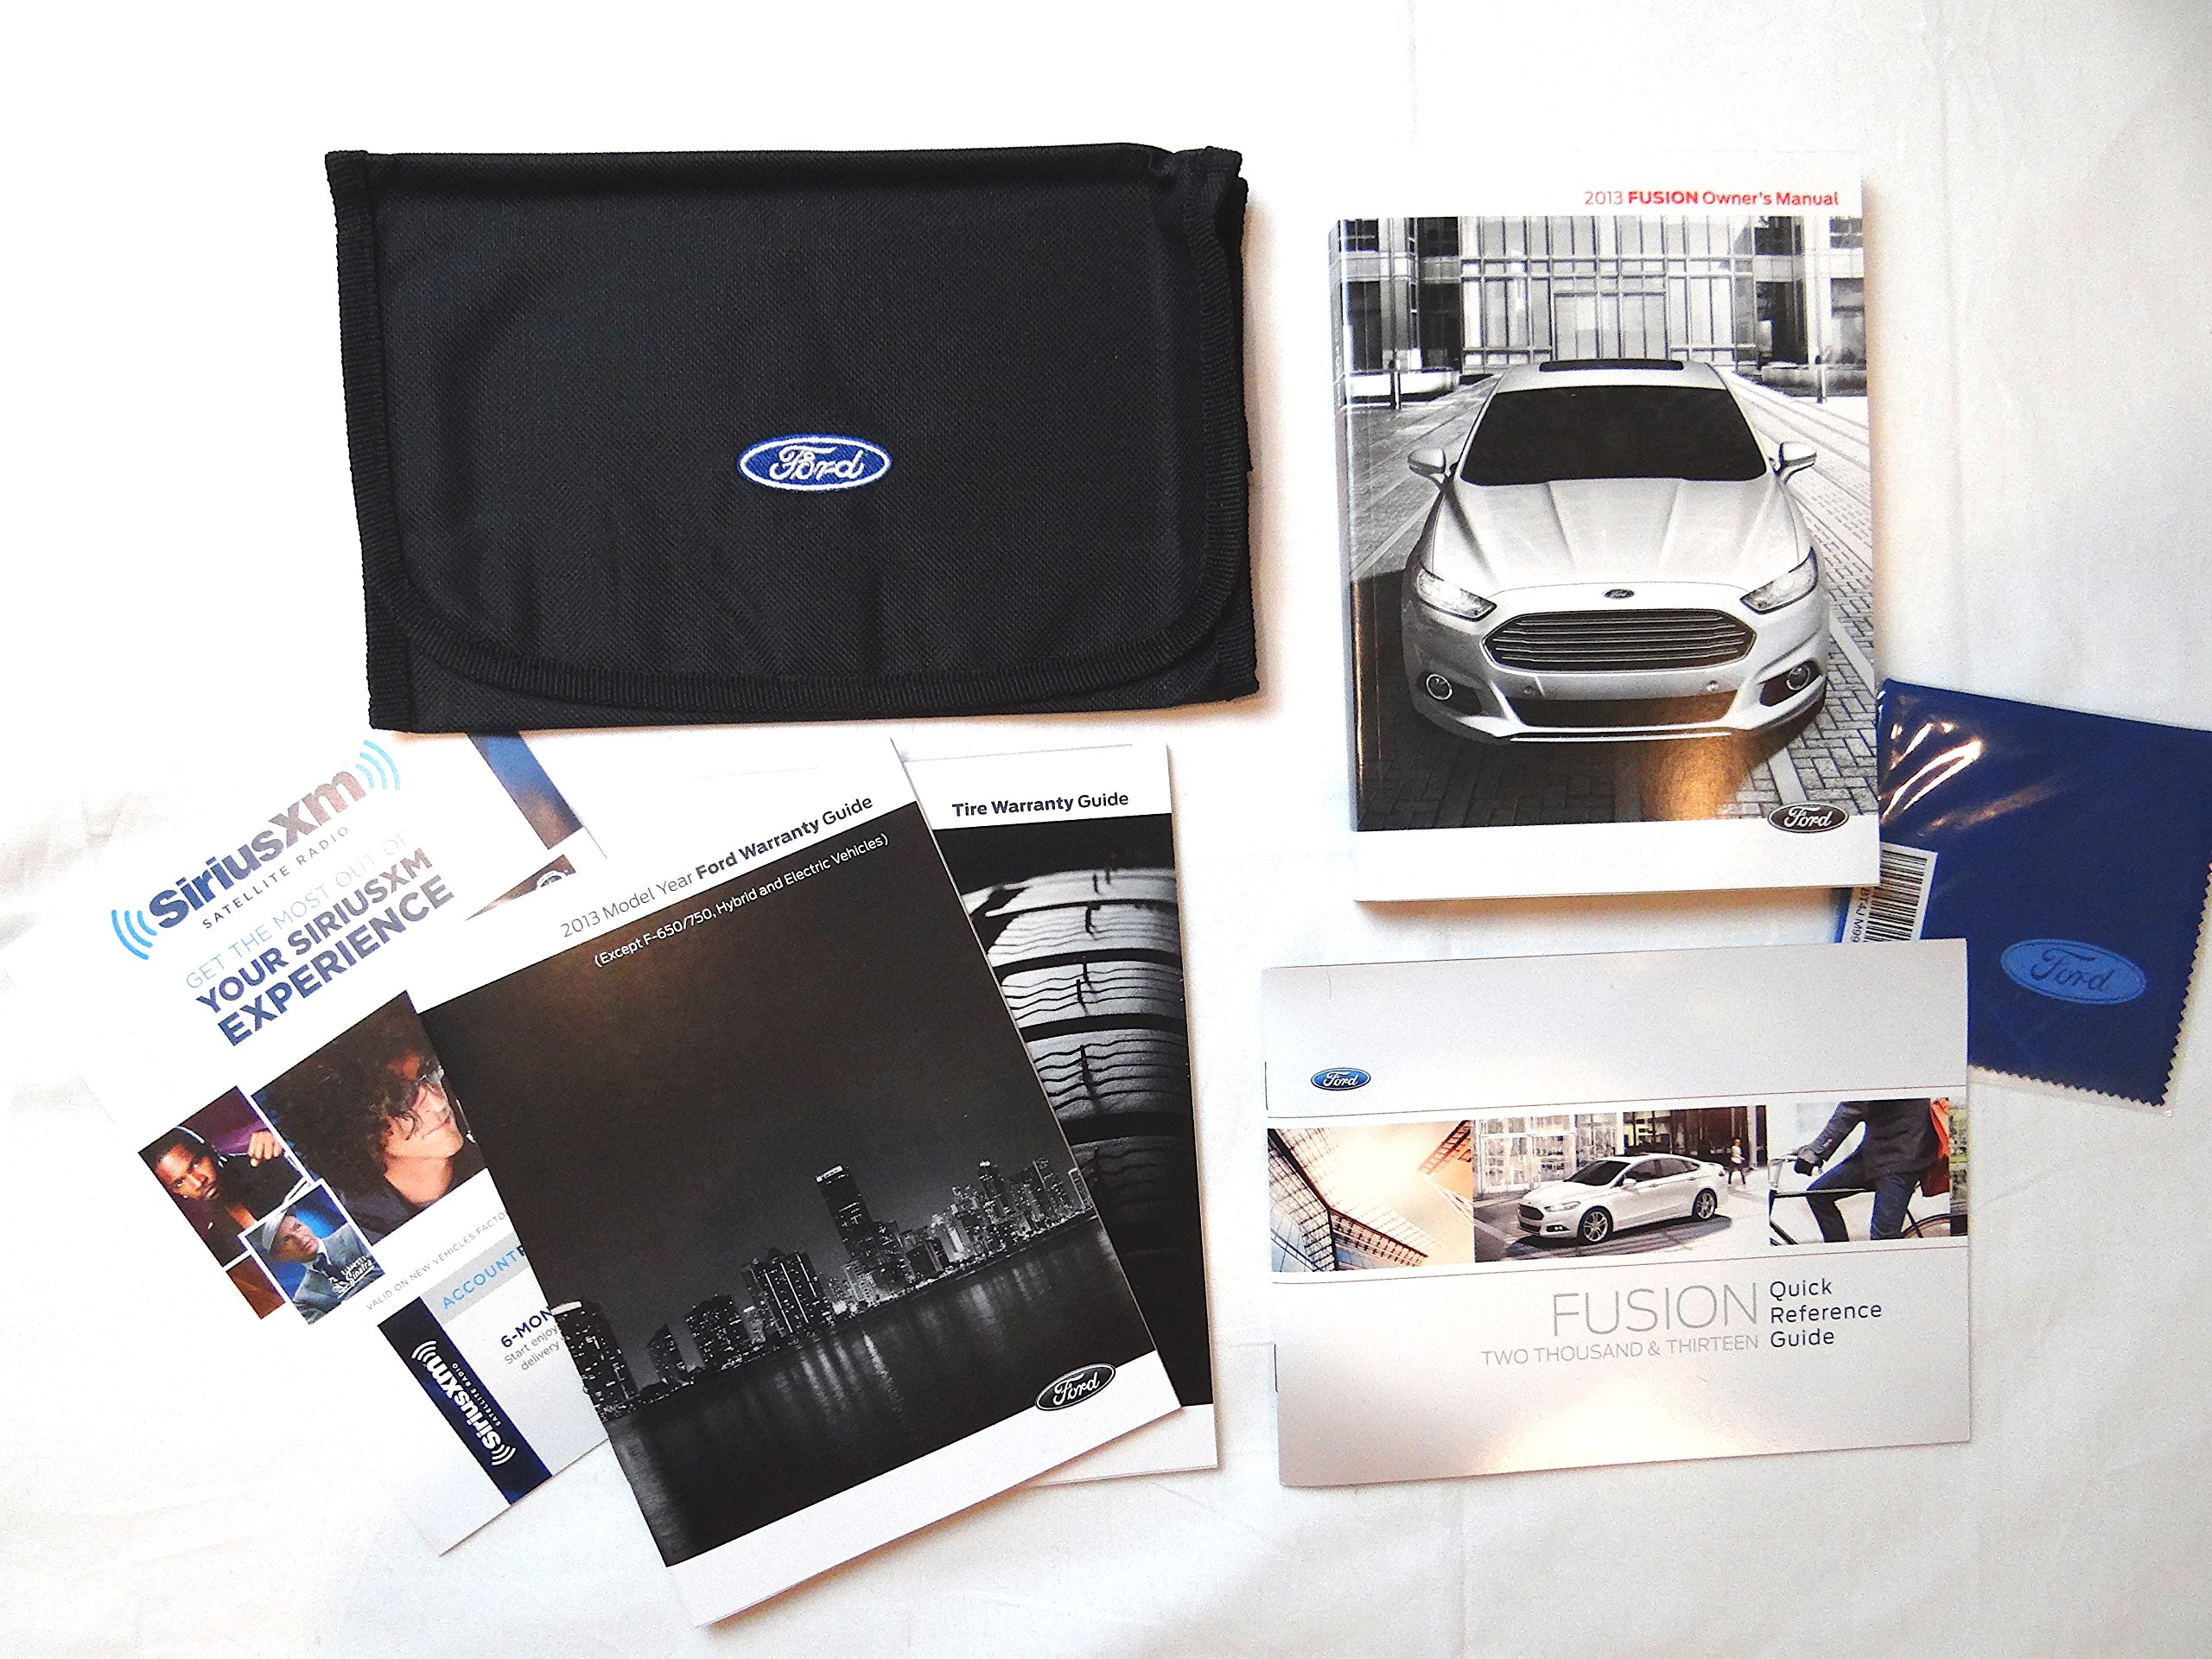 2013 Ford Fusion Owners Manual Set With Case Ford 0708676917799